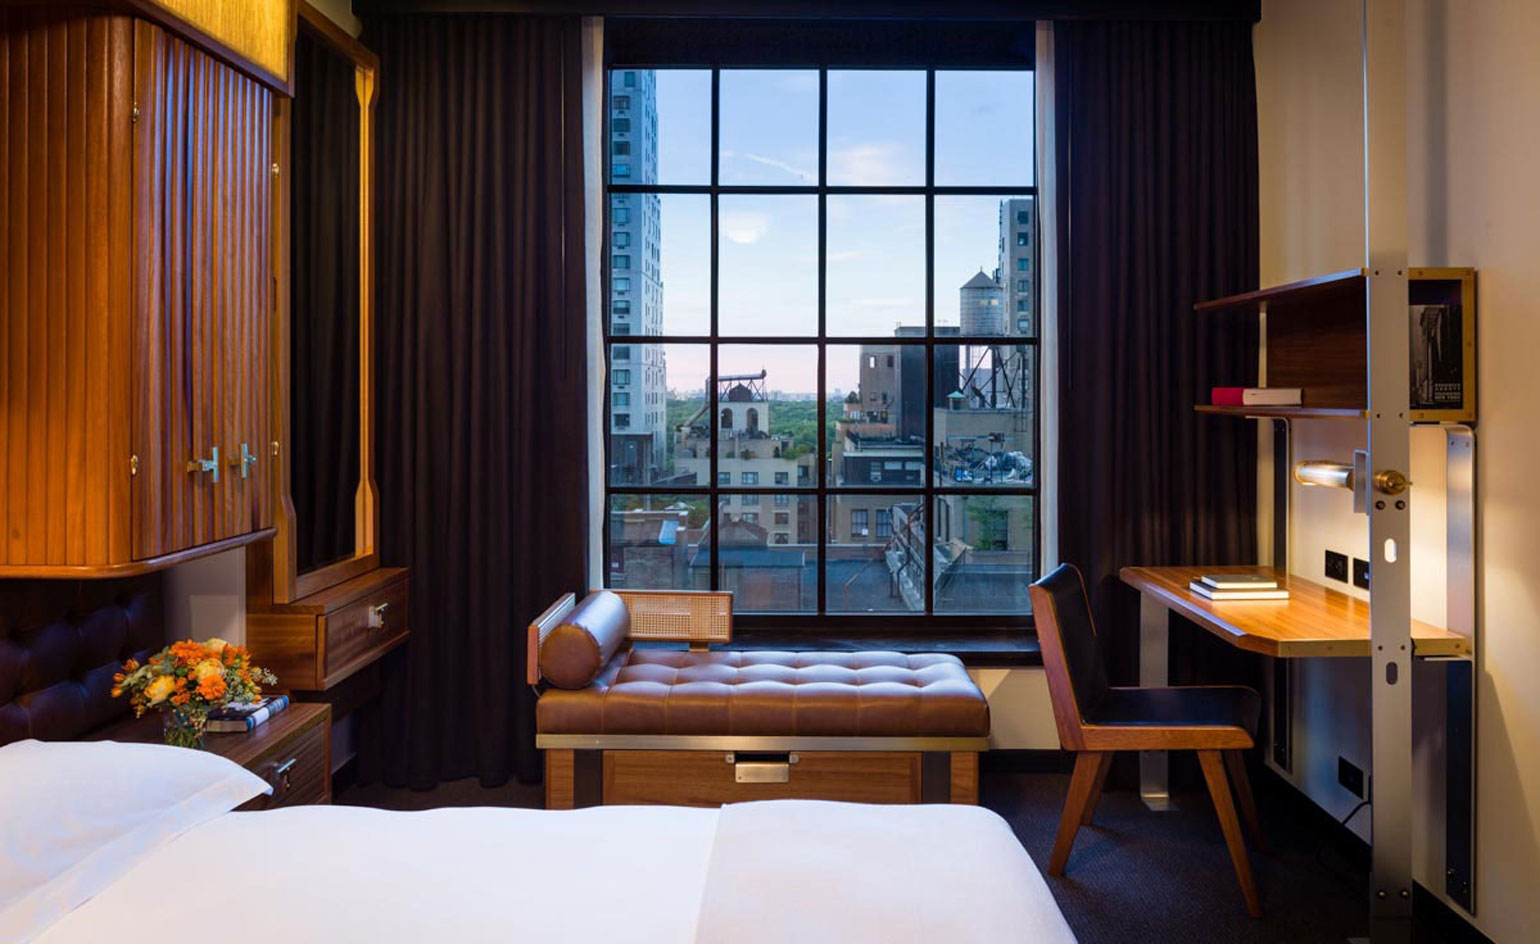 Viceroy New York hotel review  New York USA  Wallpaper